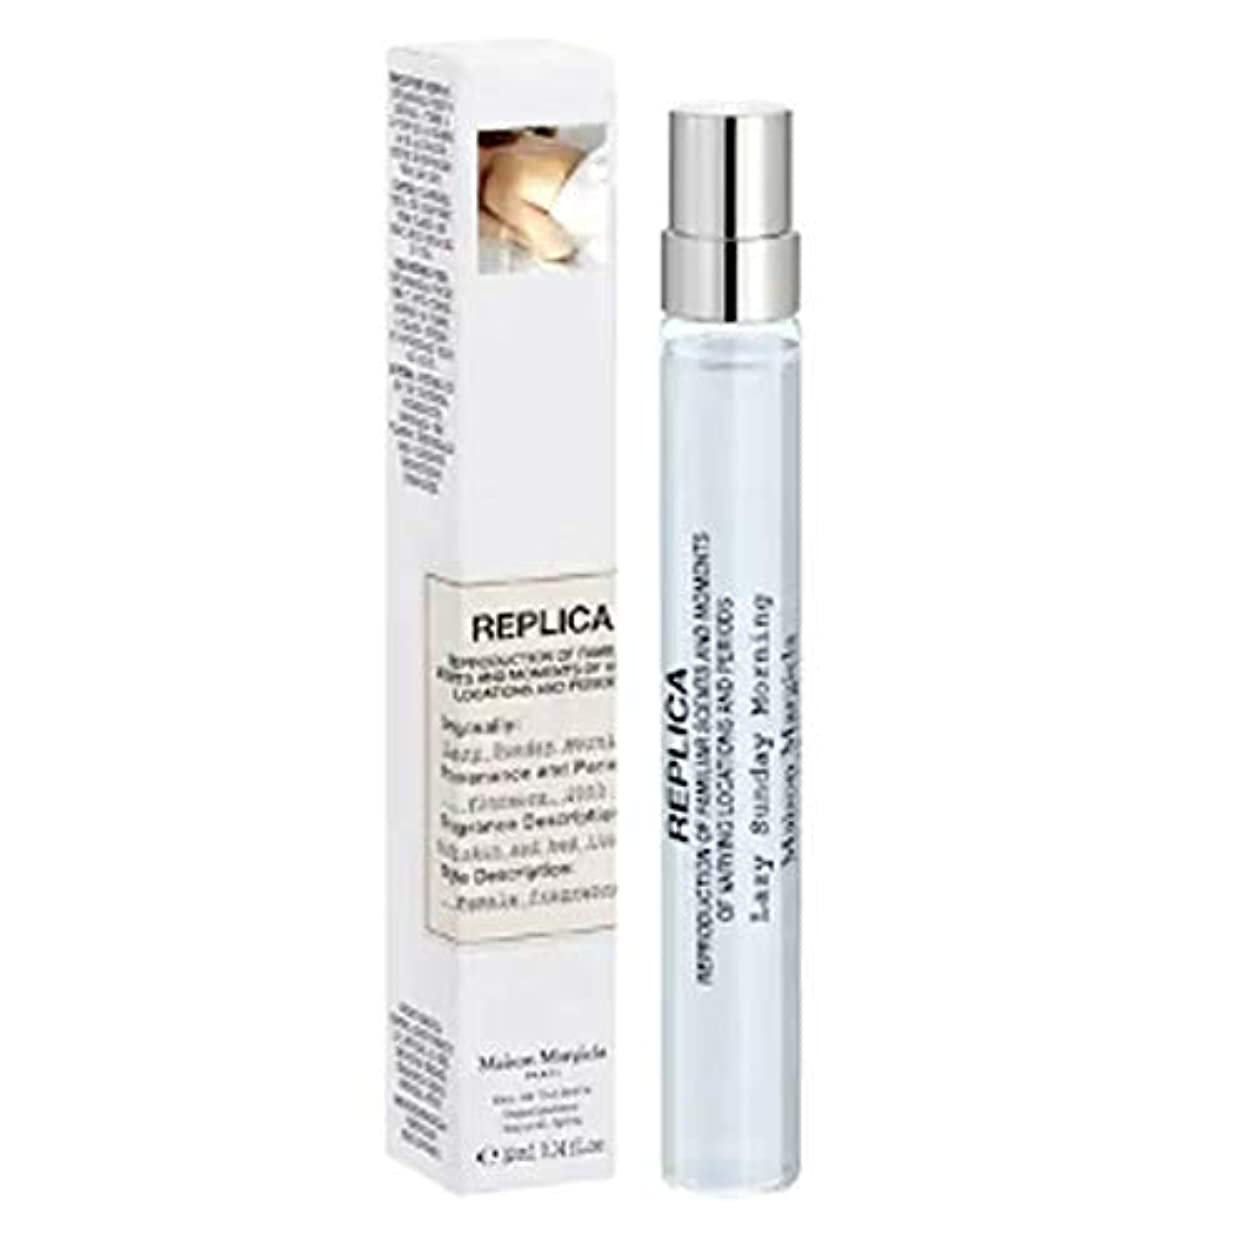 ごみアマチュア一月Maison Martin Margiela (メゾンマーチンマルジエラ)'REPLICA' Lazy Sunday Morning 10 mL Eau de Toilette Travel Spray [海外直送品]...